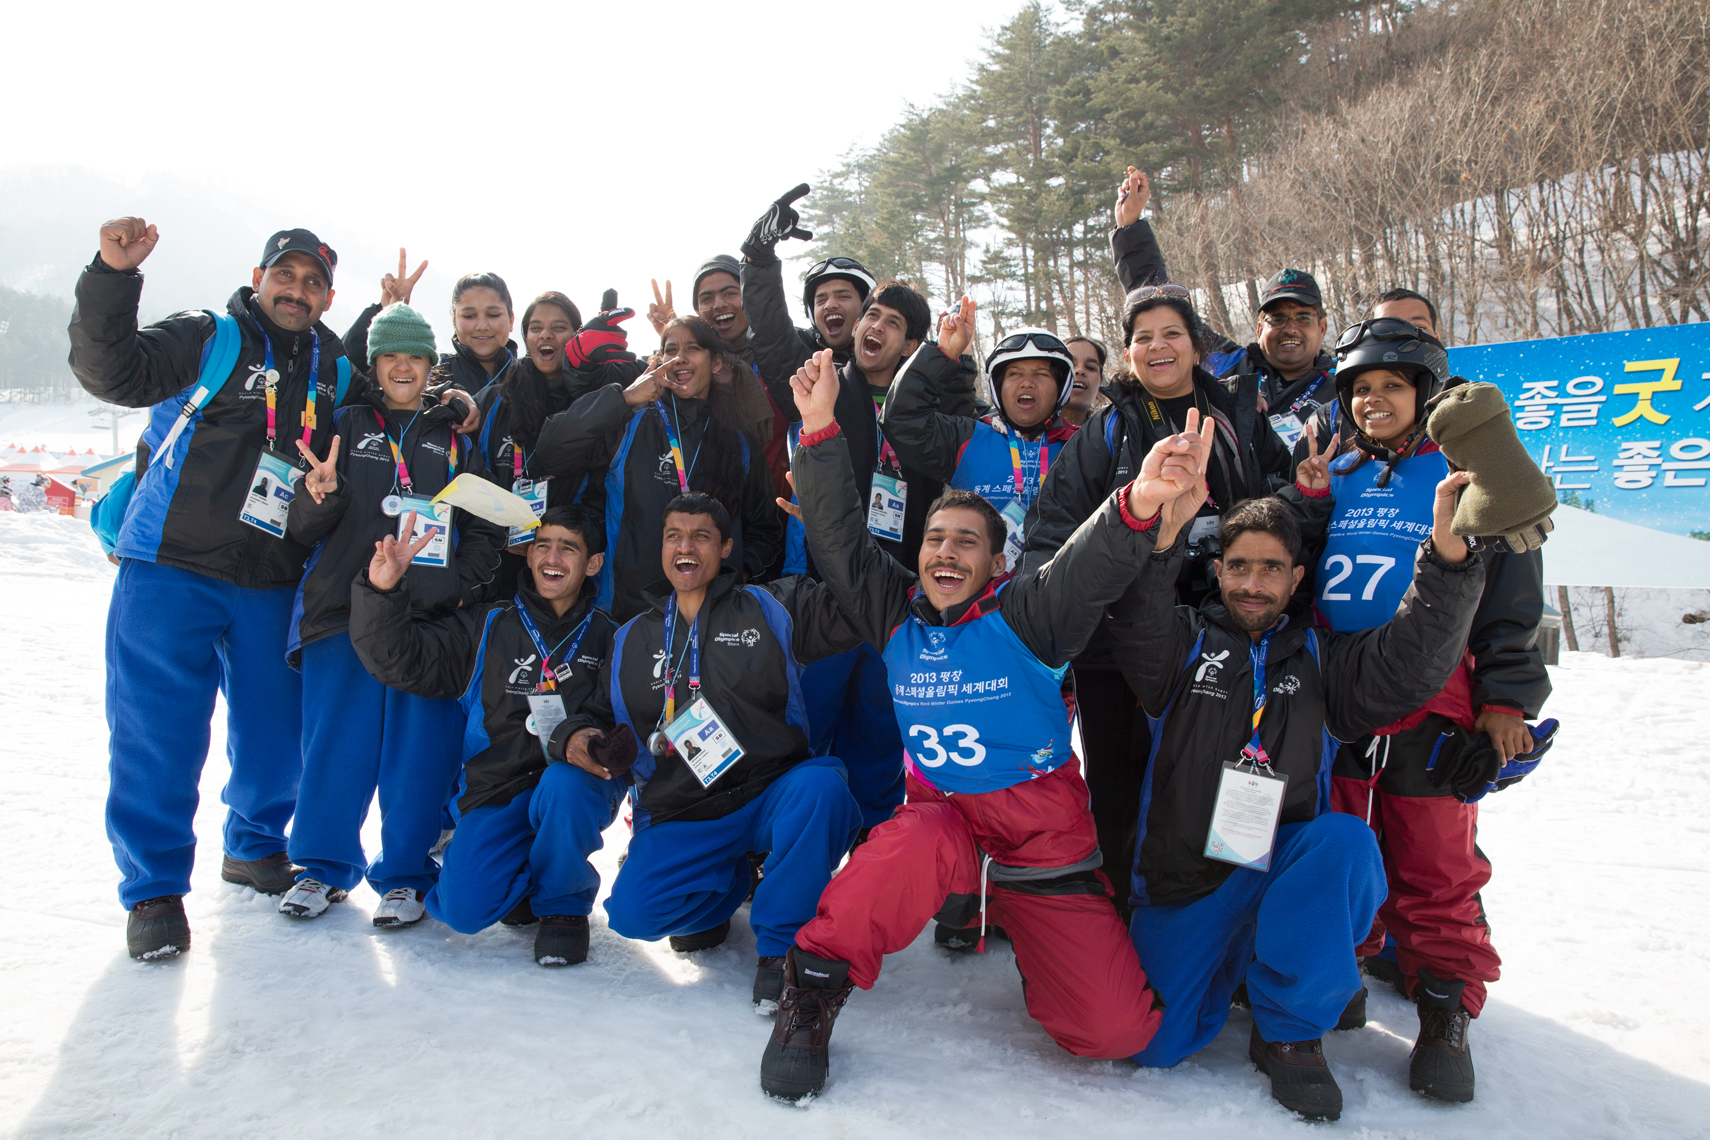 Richard_Corman_Special_Olympics_PyeongChang_2013_139January-30,-2013.jpg